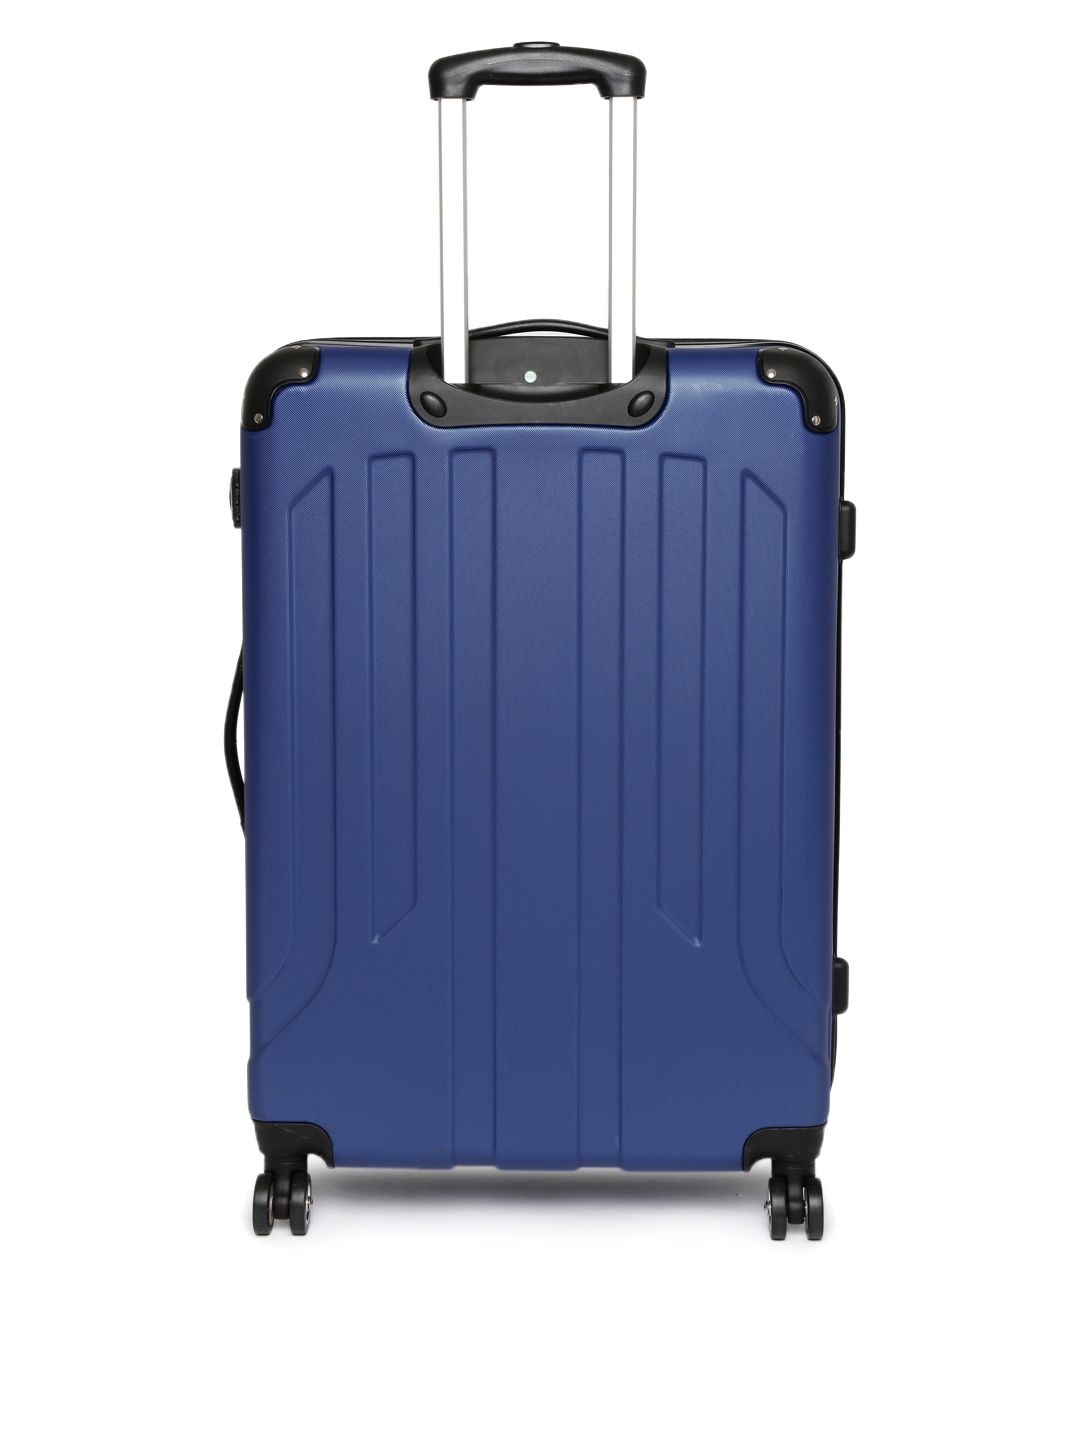 Trolley Bags - Buy Luggage Trolley Bags Online in India | Myntra